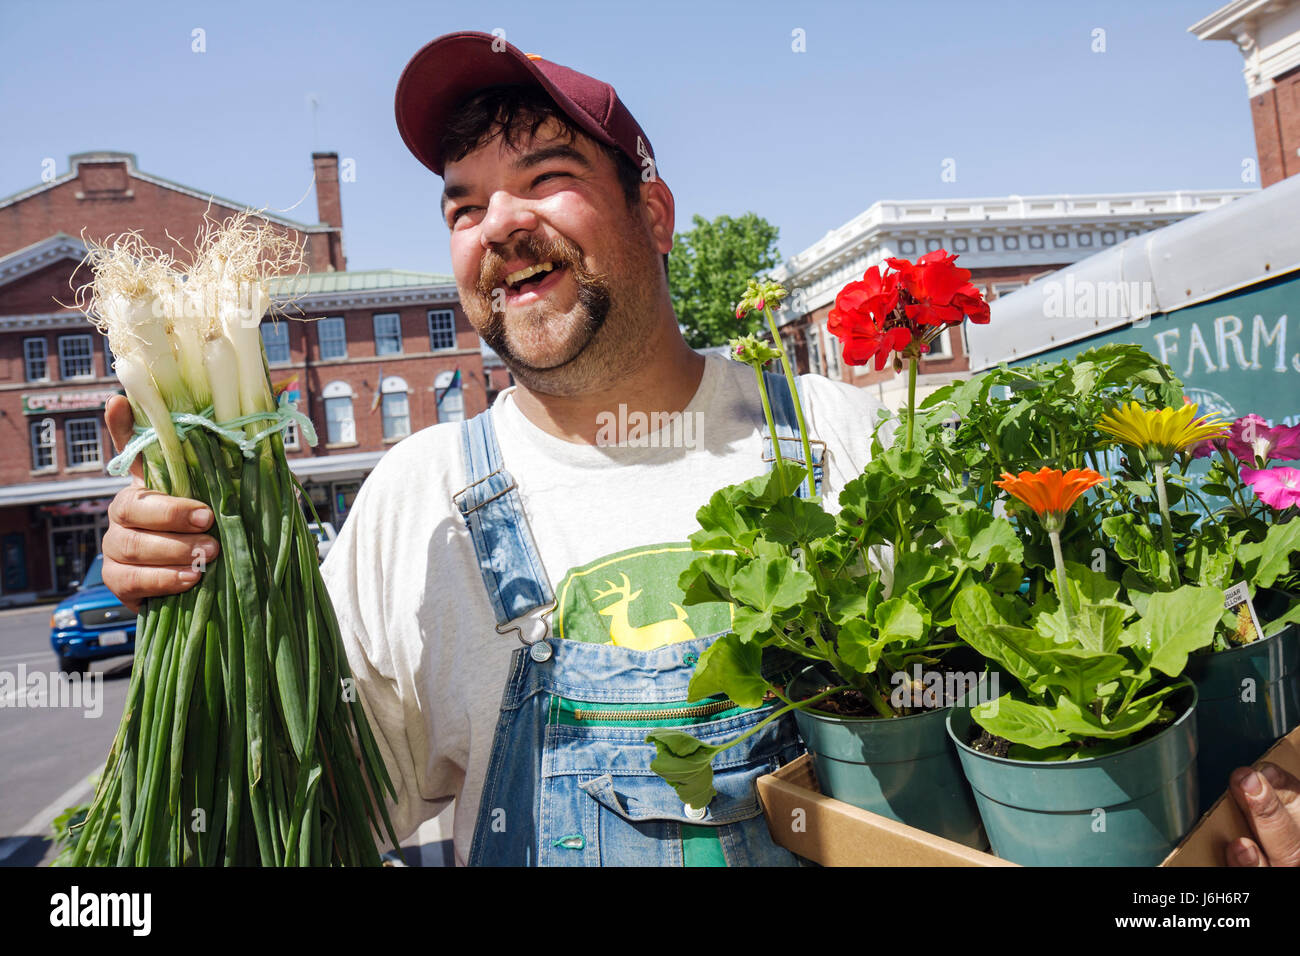 Virginia Roanoke Market Square Farmers' Market man local produce vegetables flowers plants overalls country - Stock Image